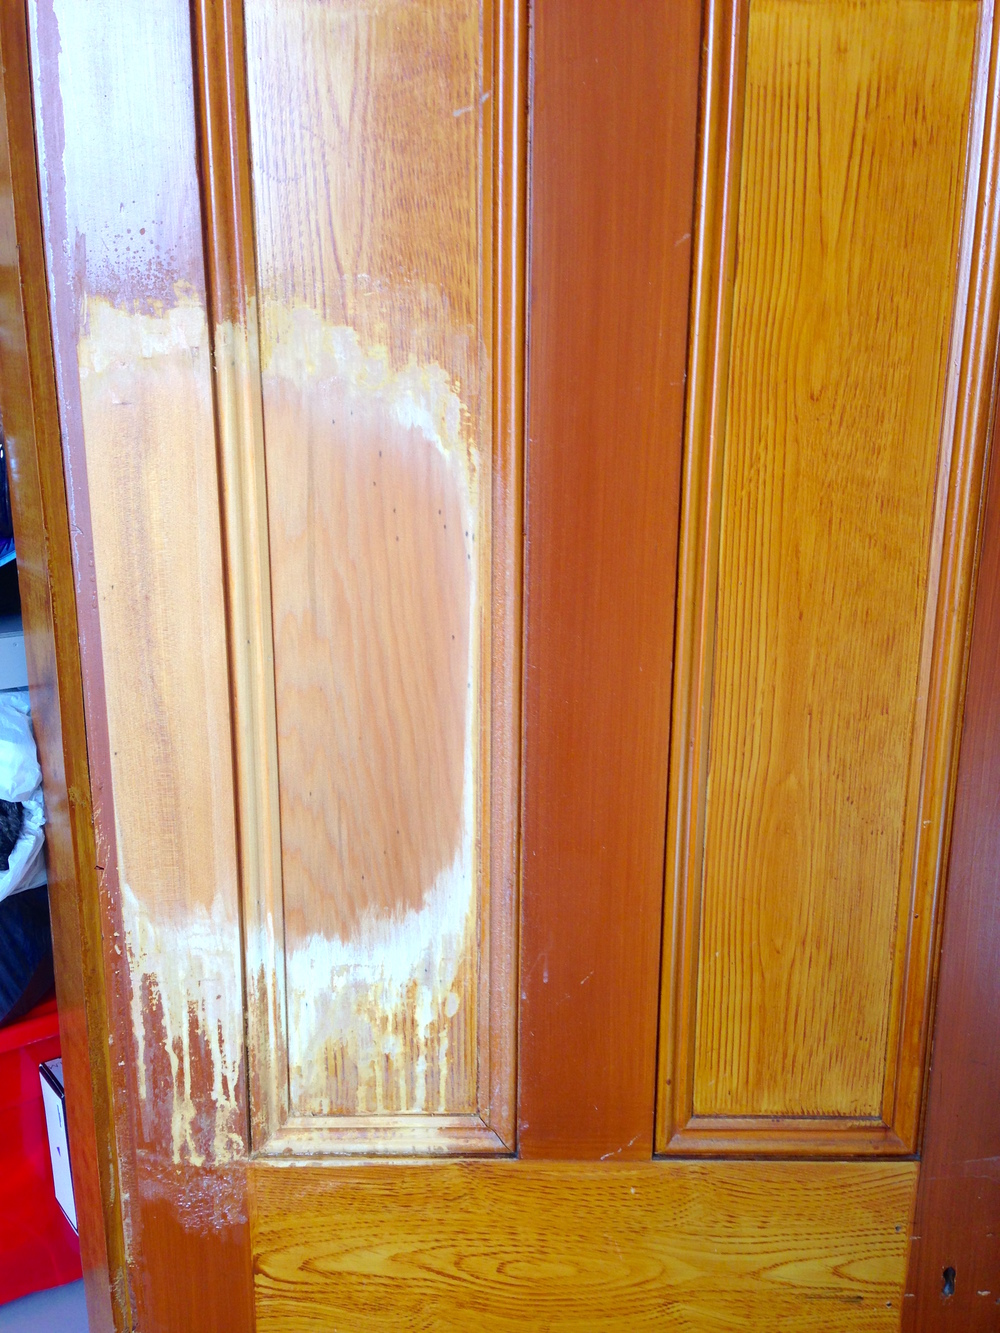 Here is a rather interesting project, this door has had a fake wood grain put on top of it to make it look like oak and they do this by spreading out a leadish clay to blot out the original wood (Its Kauri by the way.) and than brush out the new grain to look like oak as back in the gold rush days it was cheaper to get a premium Kauri door and paint a fake grain on it than buy an oak door.